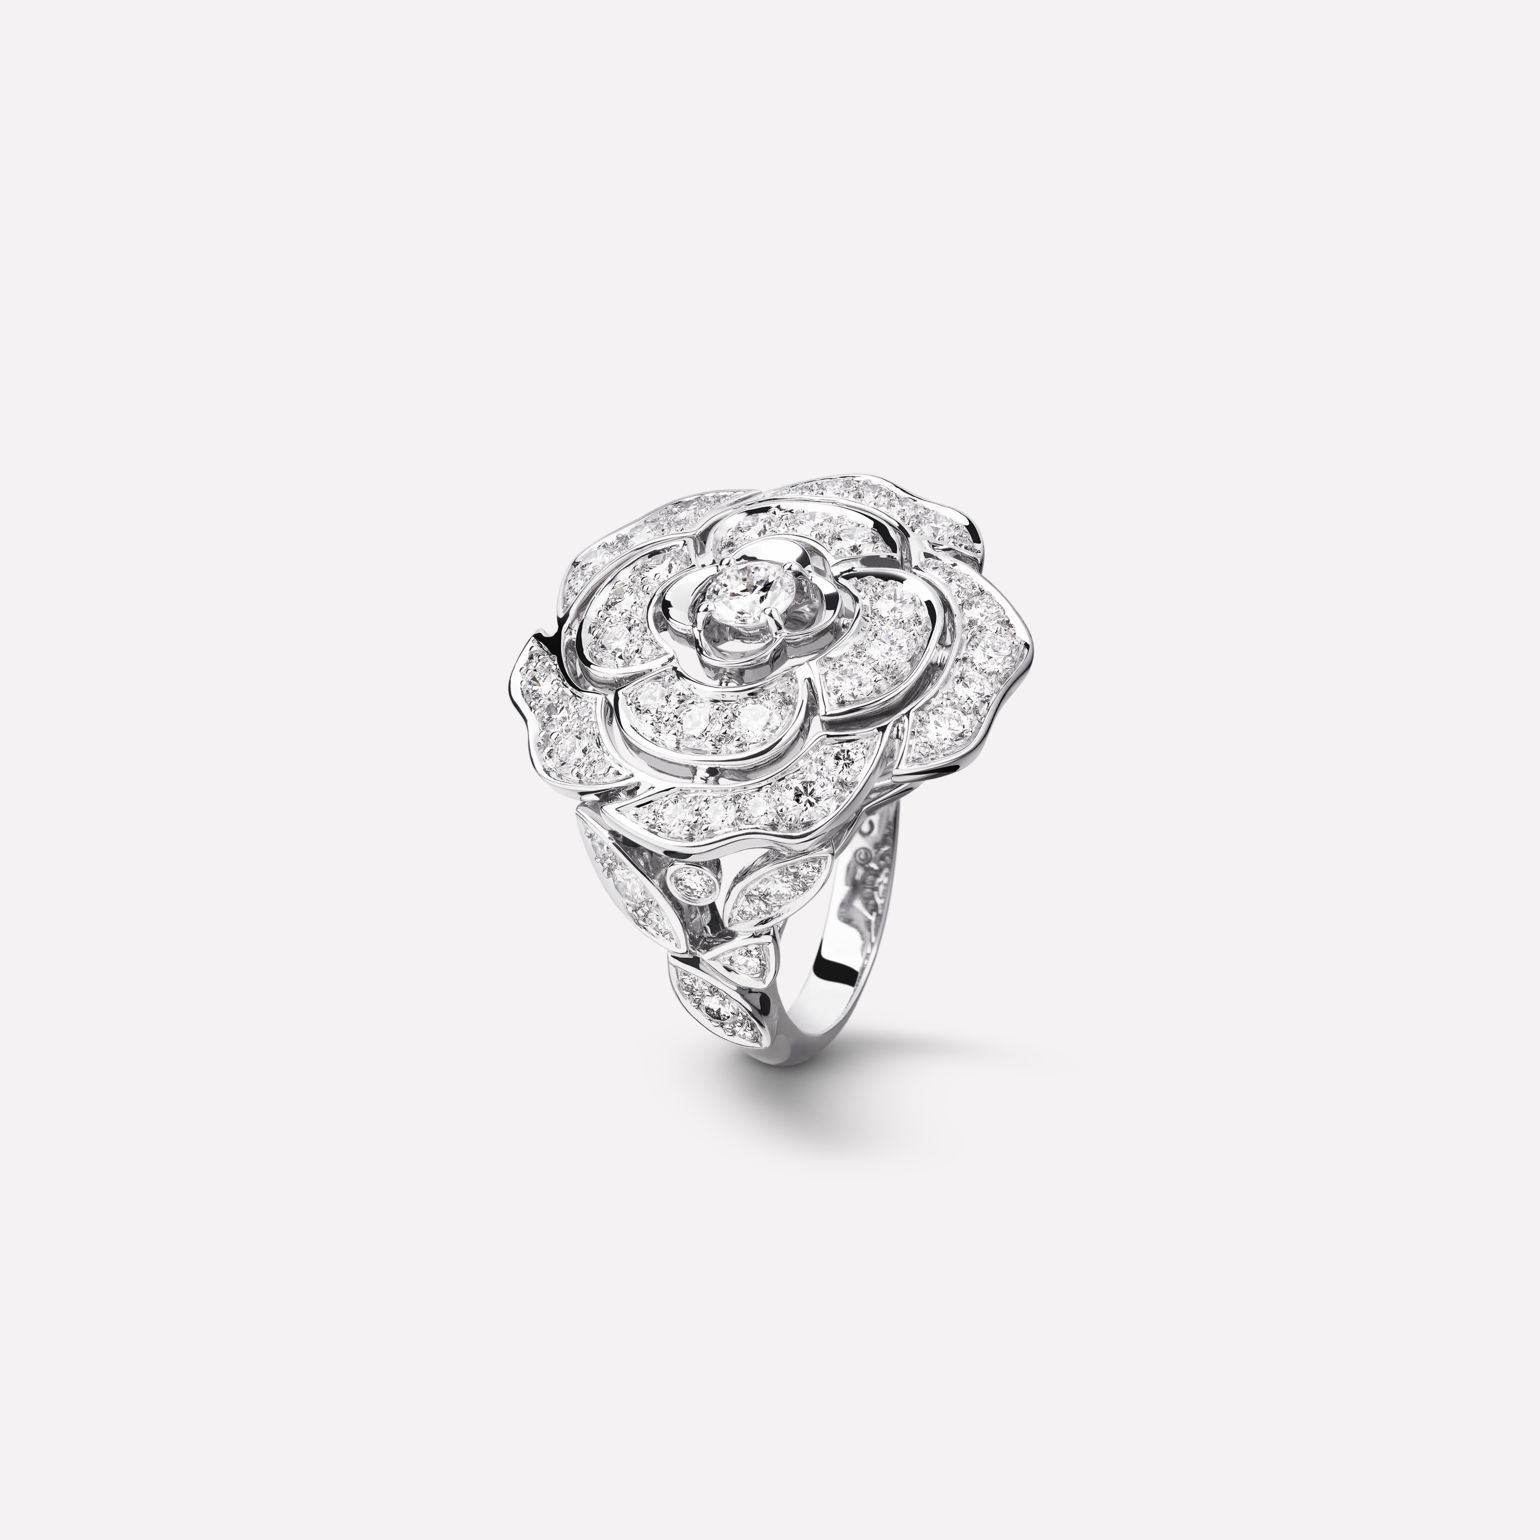 Camélia Ring Camellia bud motif in 18K white gold and diamonds with one center diamond